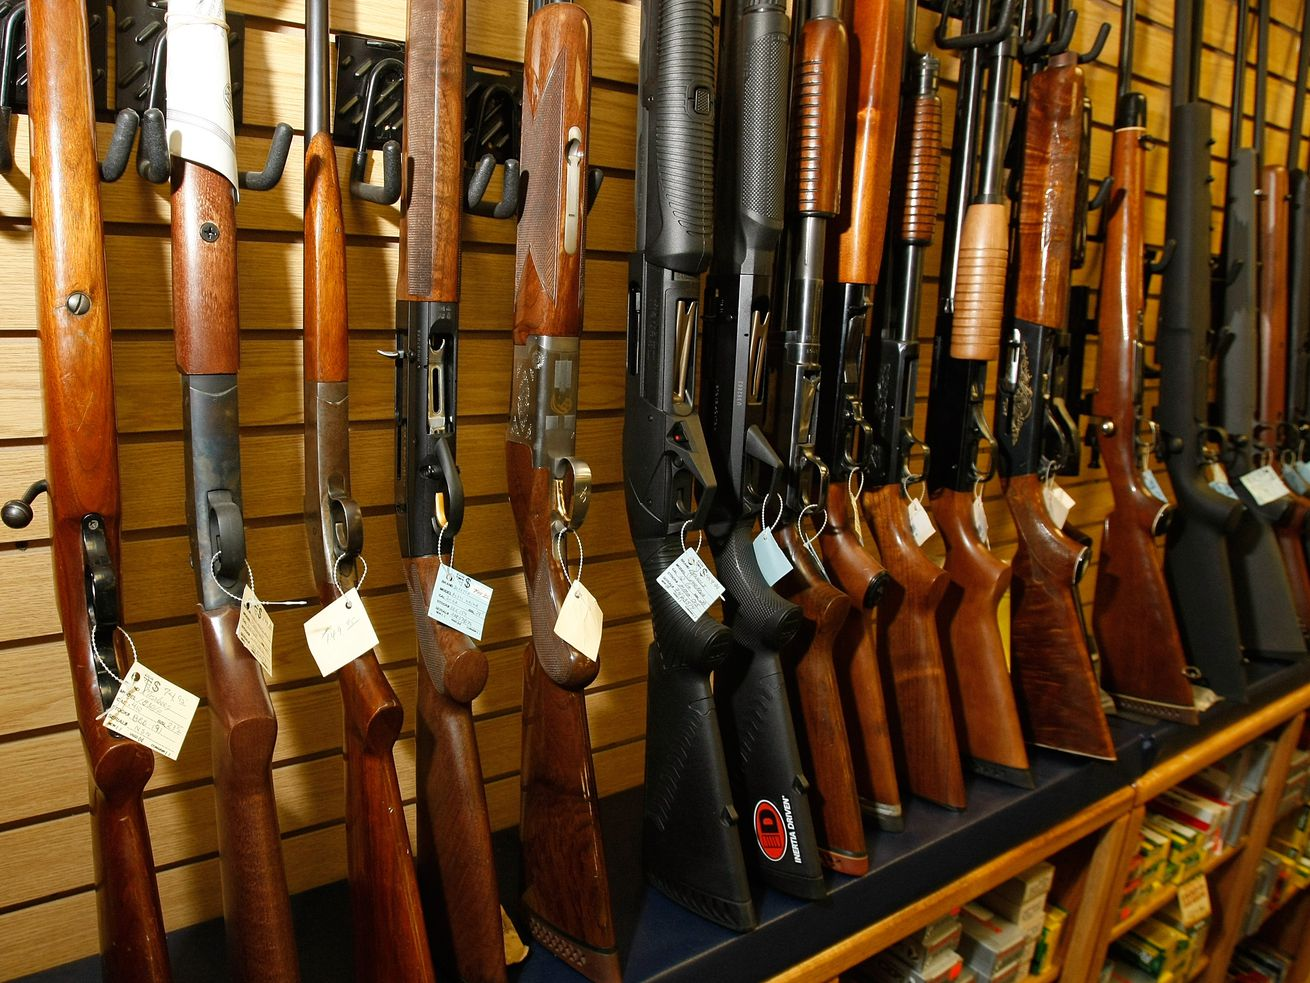 Guns for sale are displayed at The Gun Store in 2008 in Las Vegas, Nevada.